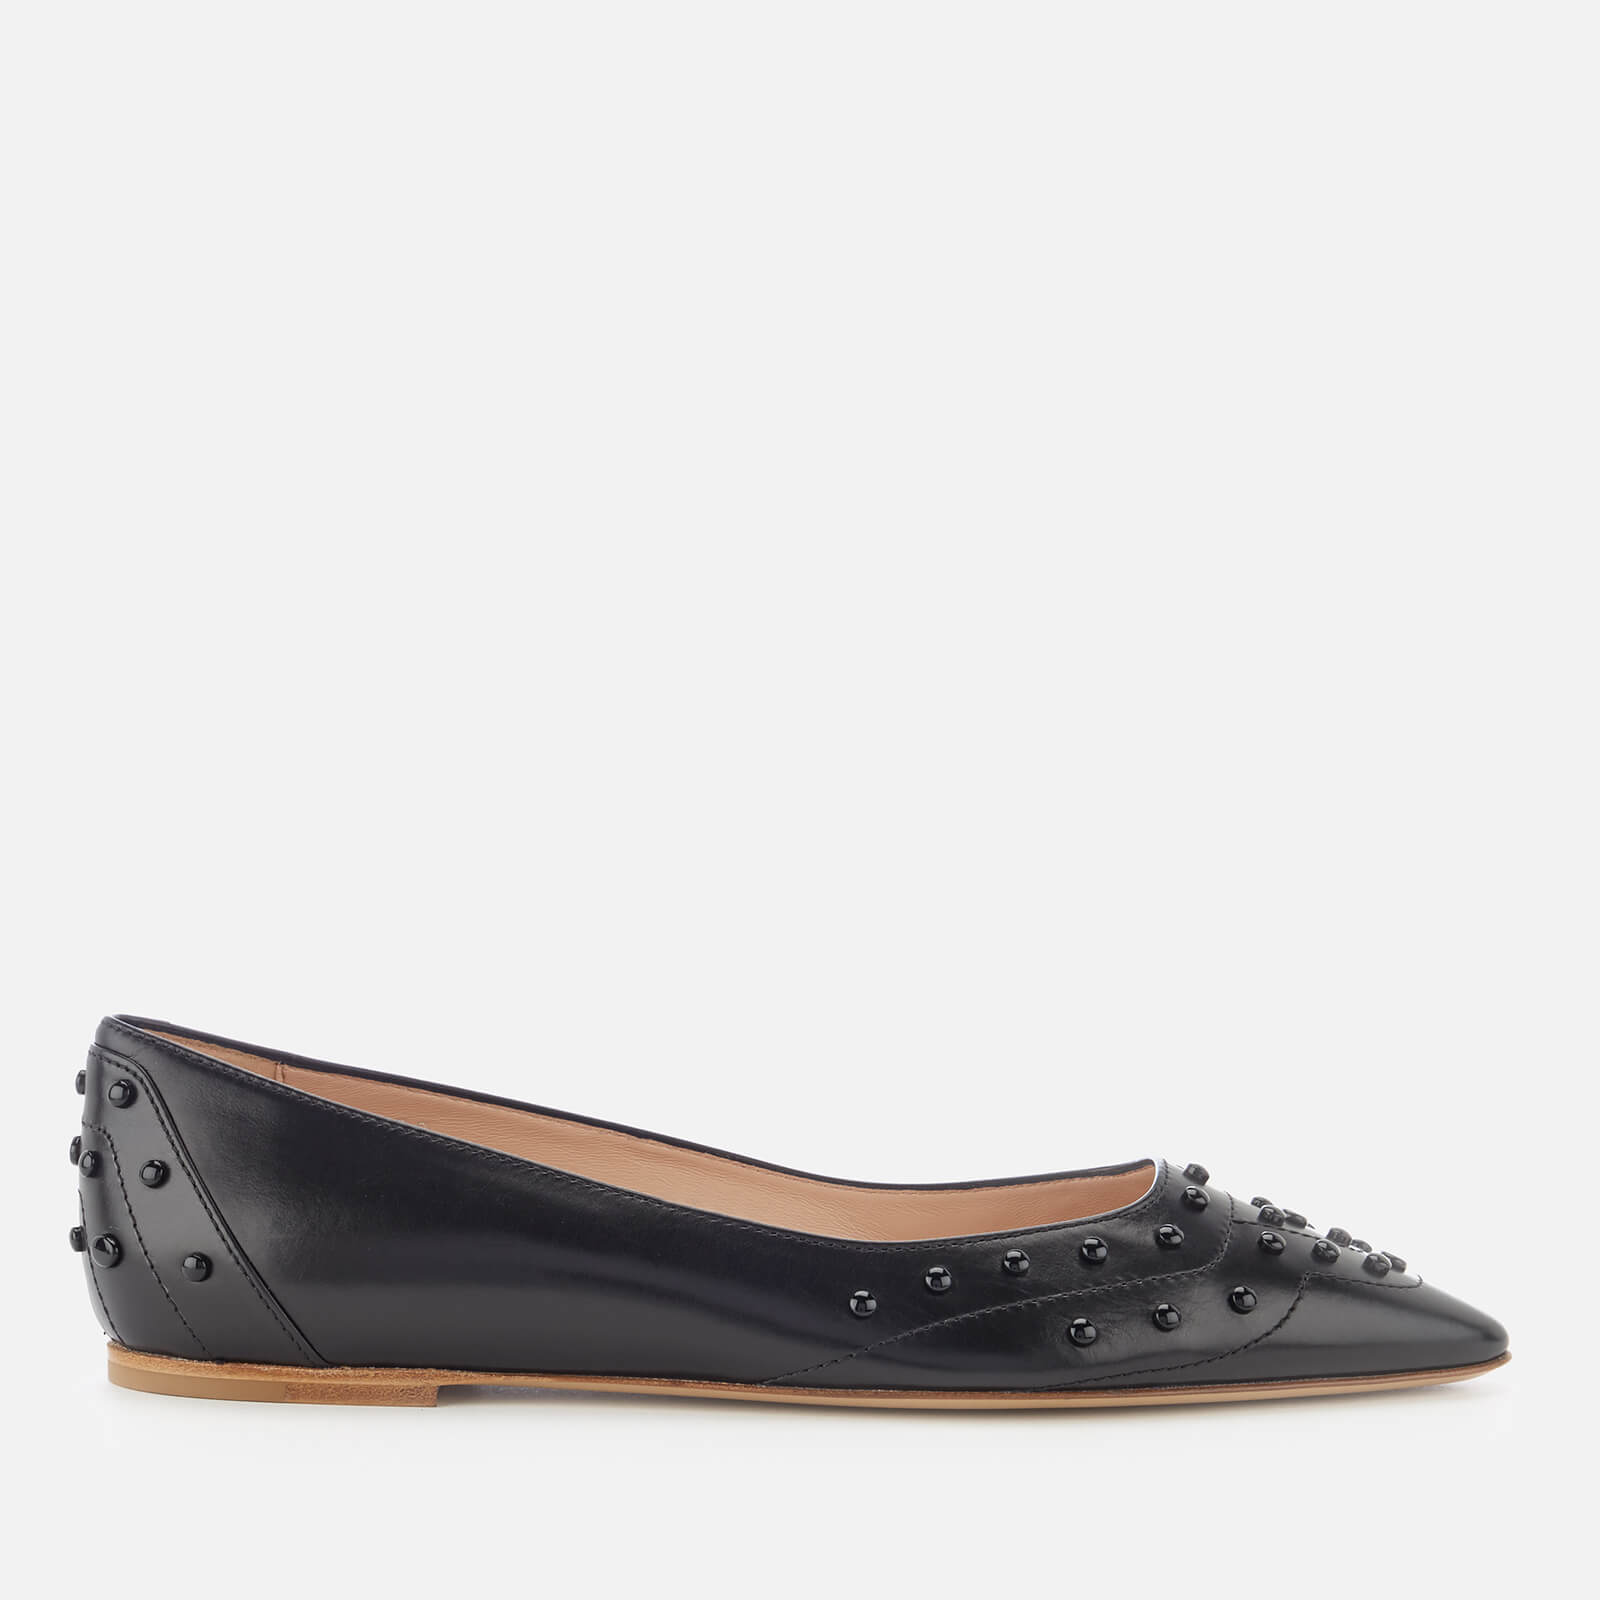 1bc772874ab Tod s Women s Pointed Ballet Flats - Black - Free UK Delivery over £50